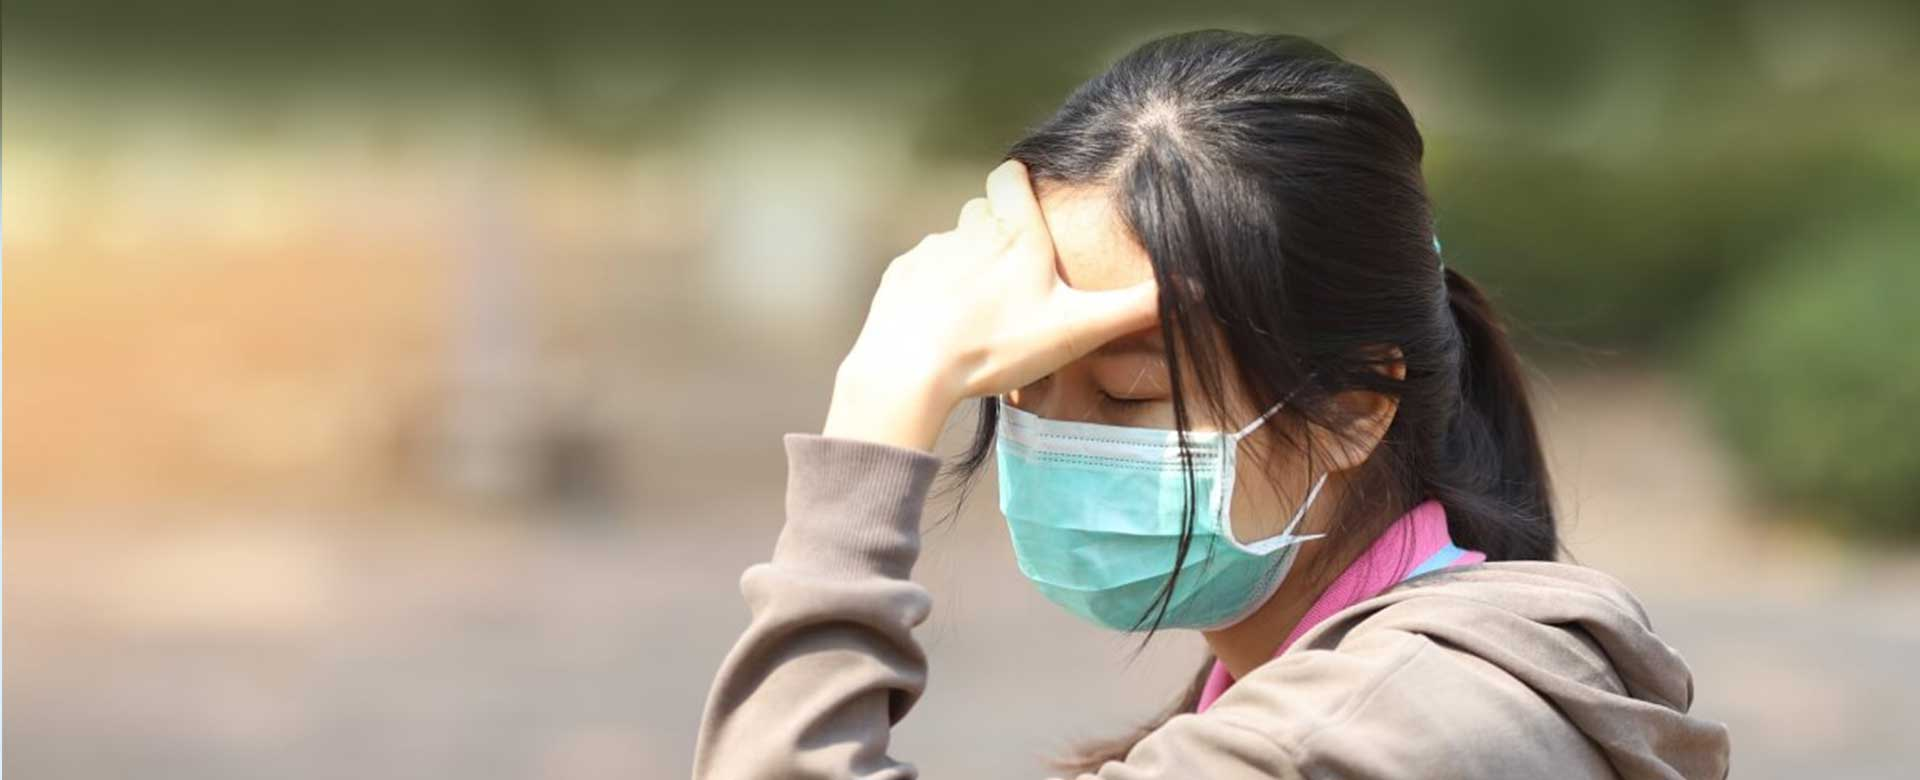 Stress And Anxiety In The Timeof Coronavirus Pandemic, Home of Wellness